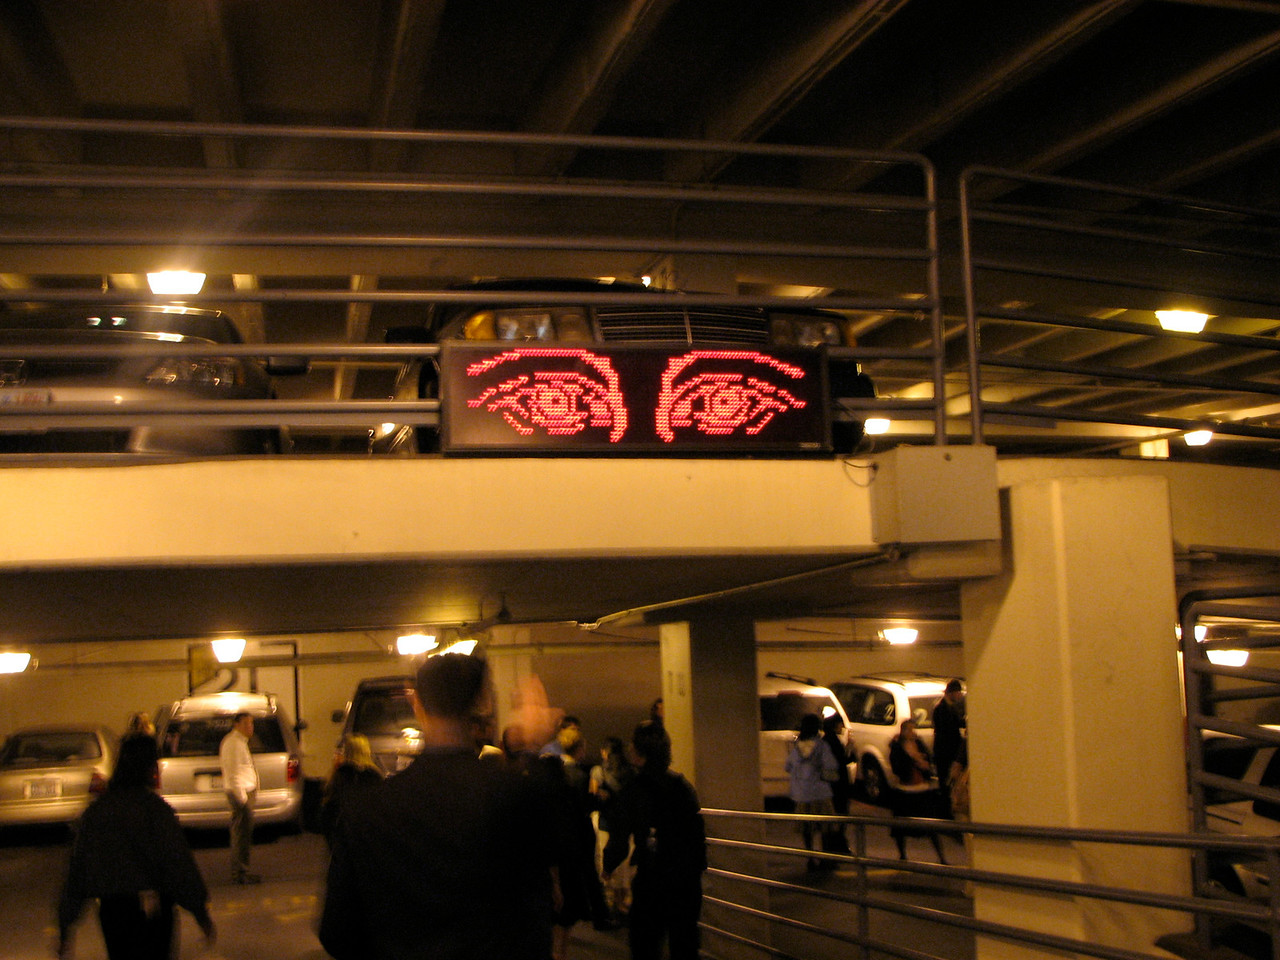 2007 04 11 Wed - Temple Square - Exeunt 2 - Big Brother eyes in parking garage